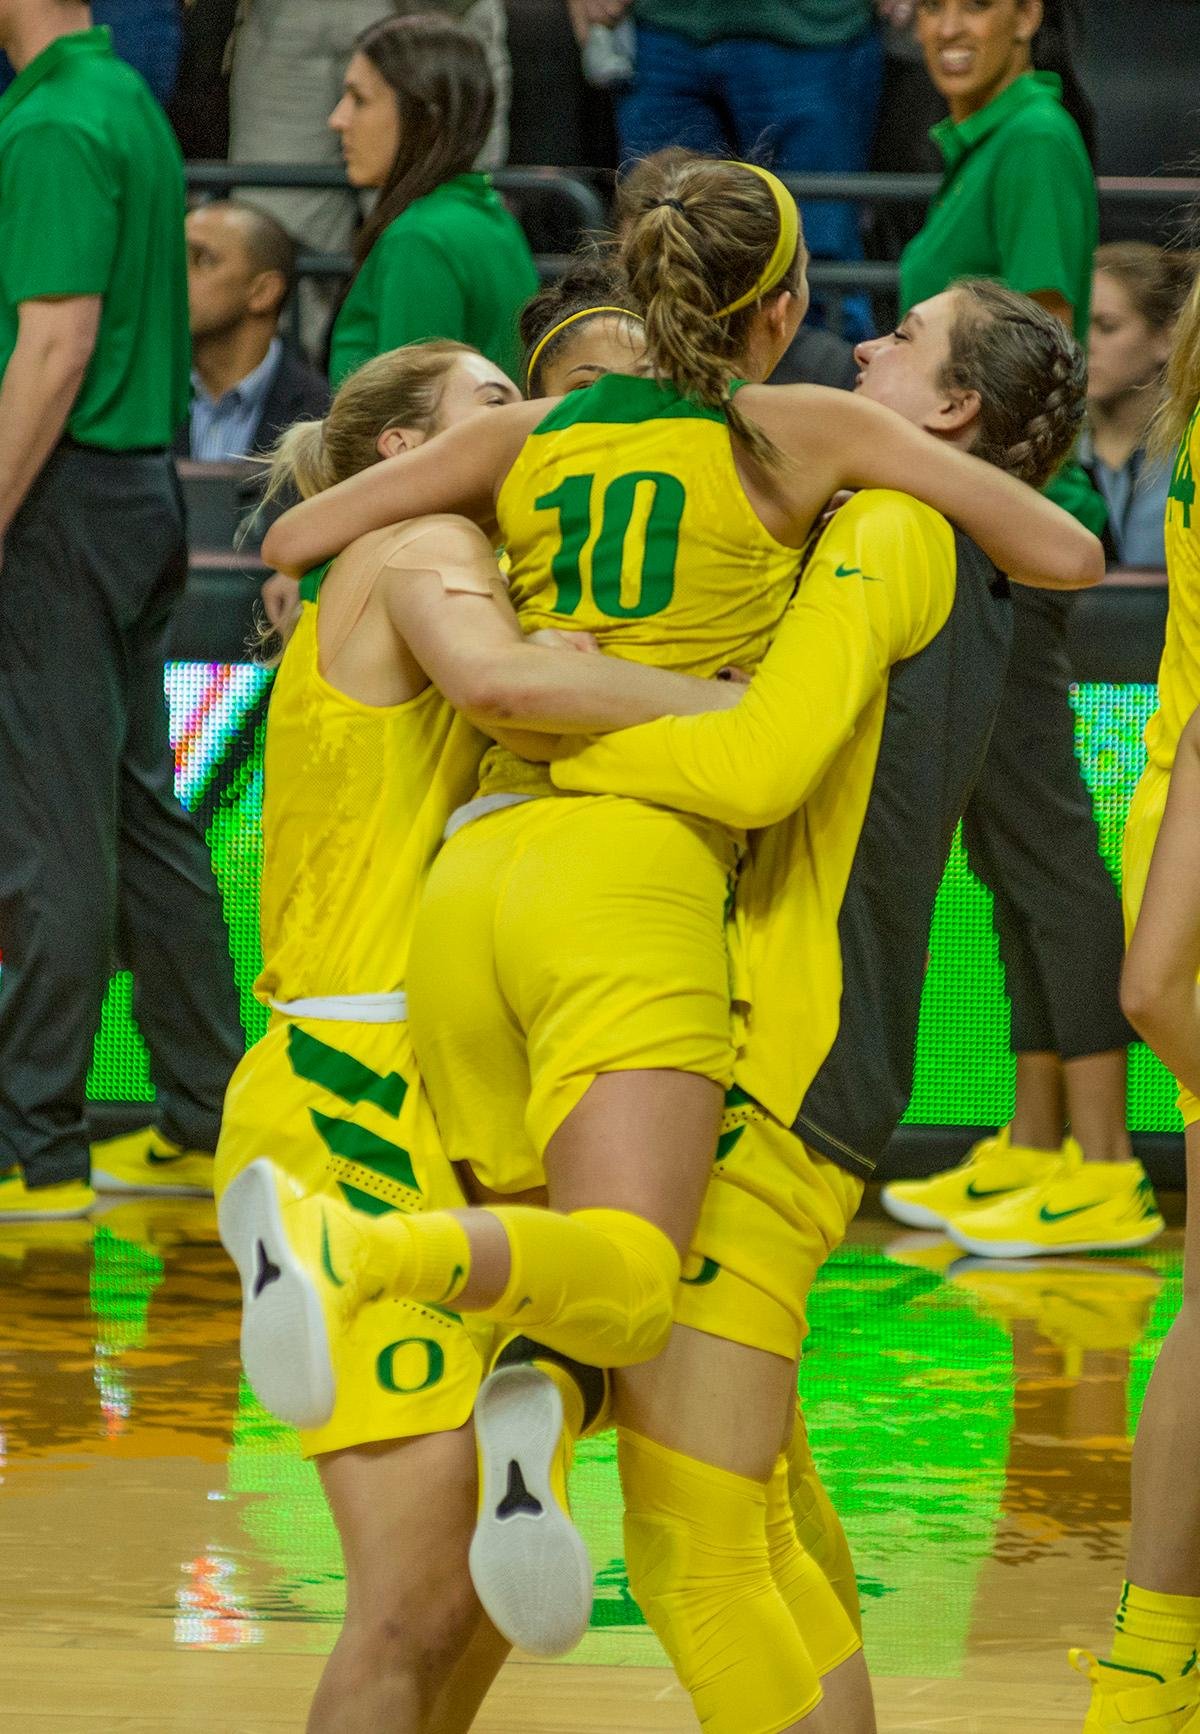 Oregon Ducks Lexi Bando (#10) celebrates with her teammates after their win over the USC Trojans. The Oregon Ducks defeated the USC Trojans 80-74 on Friday at Matthew Knight Arena in a game that went into double overtime. Lexi Bando sealed the Ducks' victory by scoring a three-pointer in the closing of the game. Ruthy Hebard set a new NCAA record of 30 consecutive field goals over three games, the old record being 28. Ruthy Hebard got a double-double with 27 points and 10 rebounds, Mallory McGwire also had 10 rebounds. The Ducks had four players in double digits: Ruthy Hebard with 27; Maite Cazorla with 17; Sabrina Ionescu with 15; and Lexi Bando with 11. The Ducks are now 24-4, 13-2 in the Pac-12, and are tied for first with Stanford. Photo by Dan Morrison, Oregon News Lab